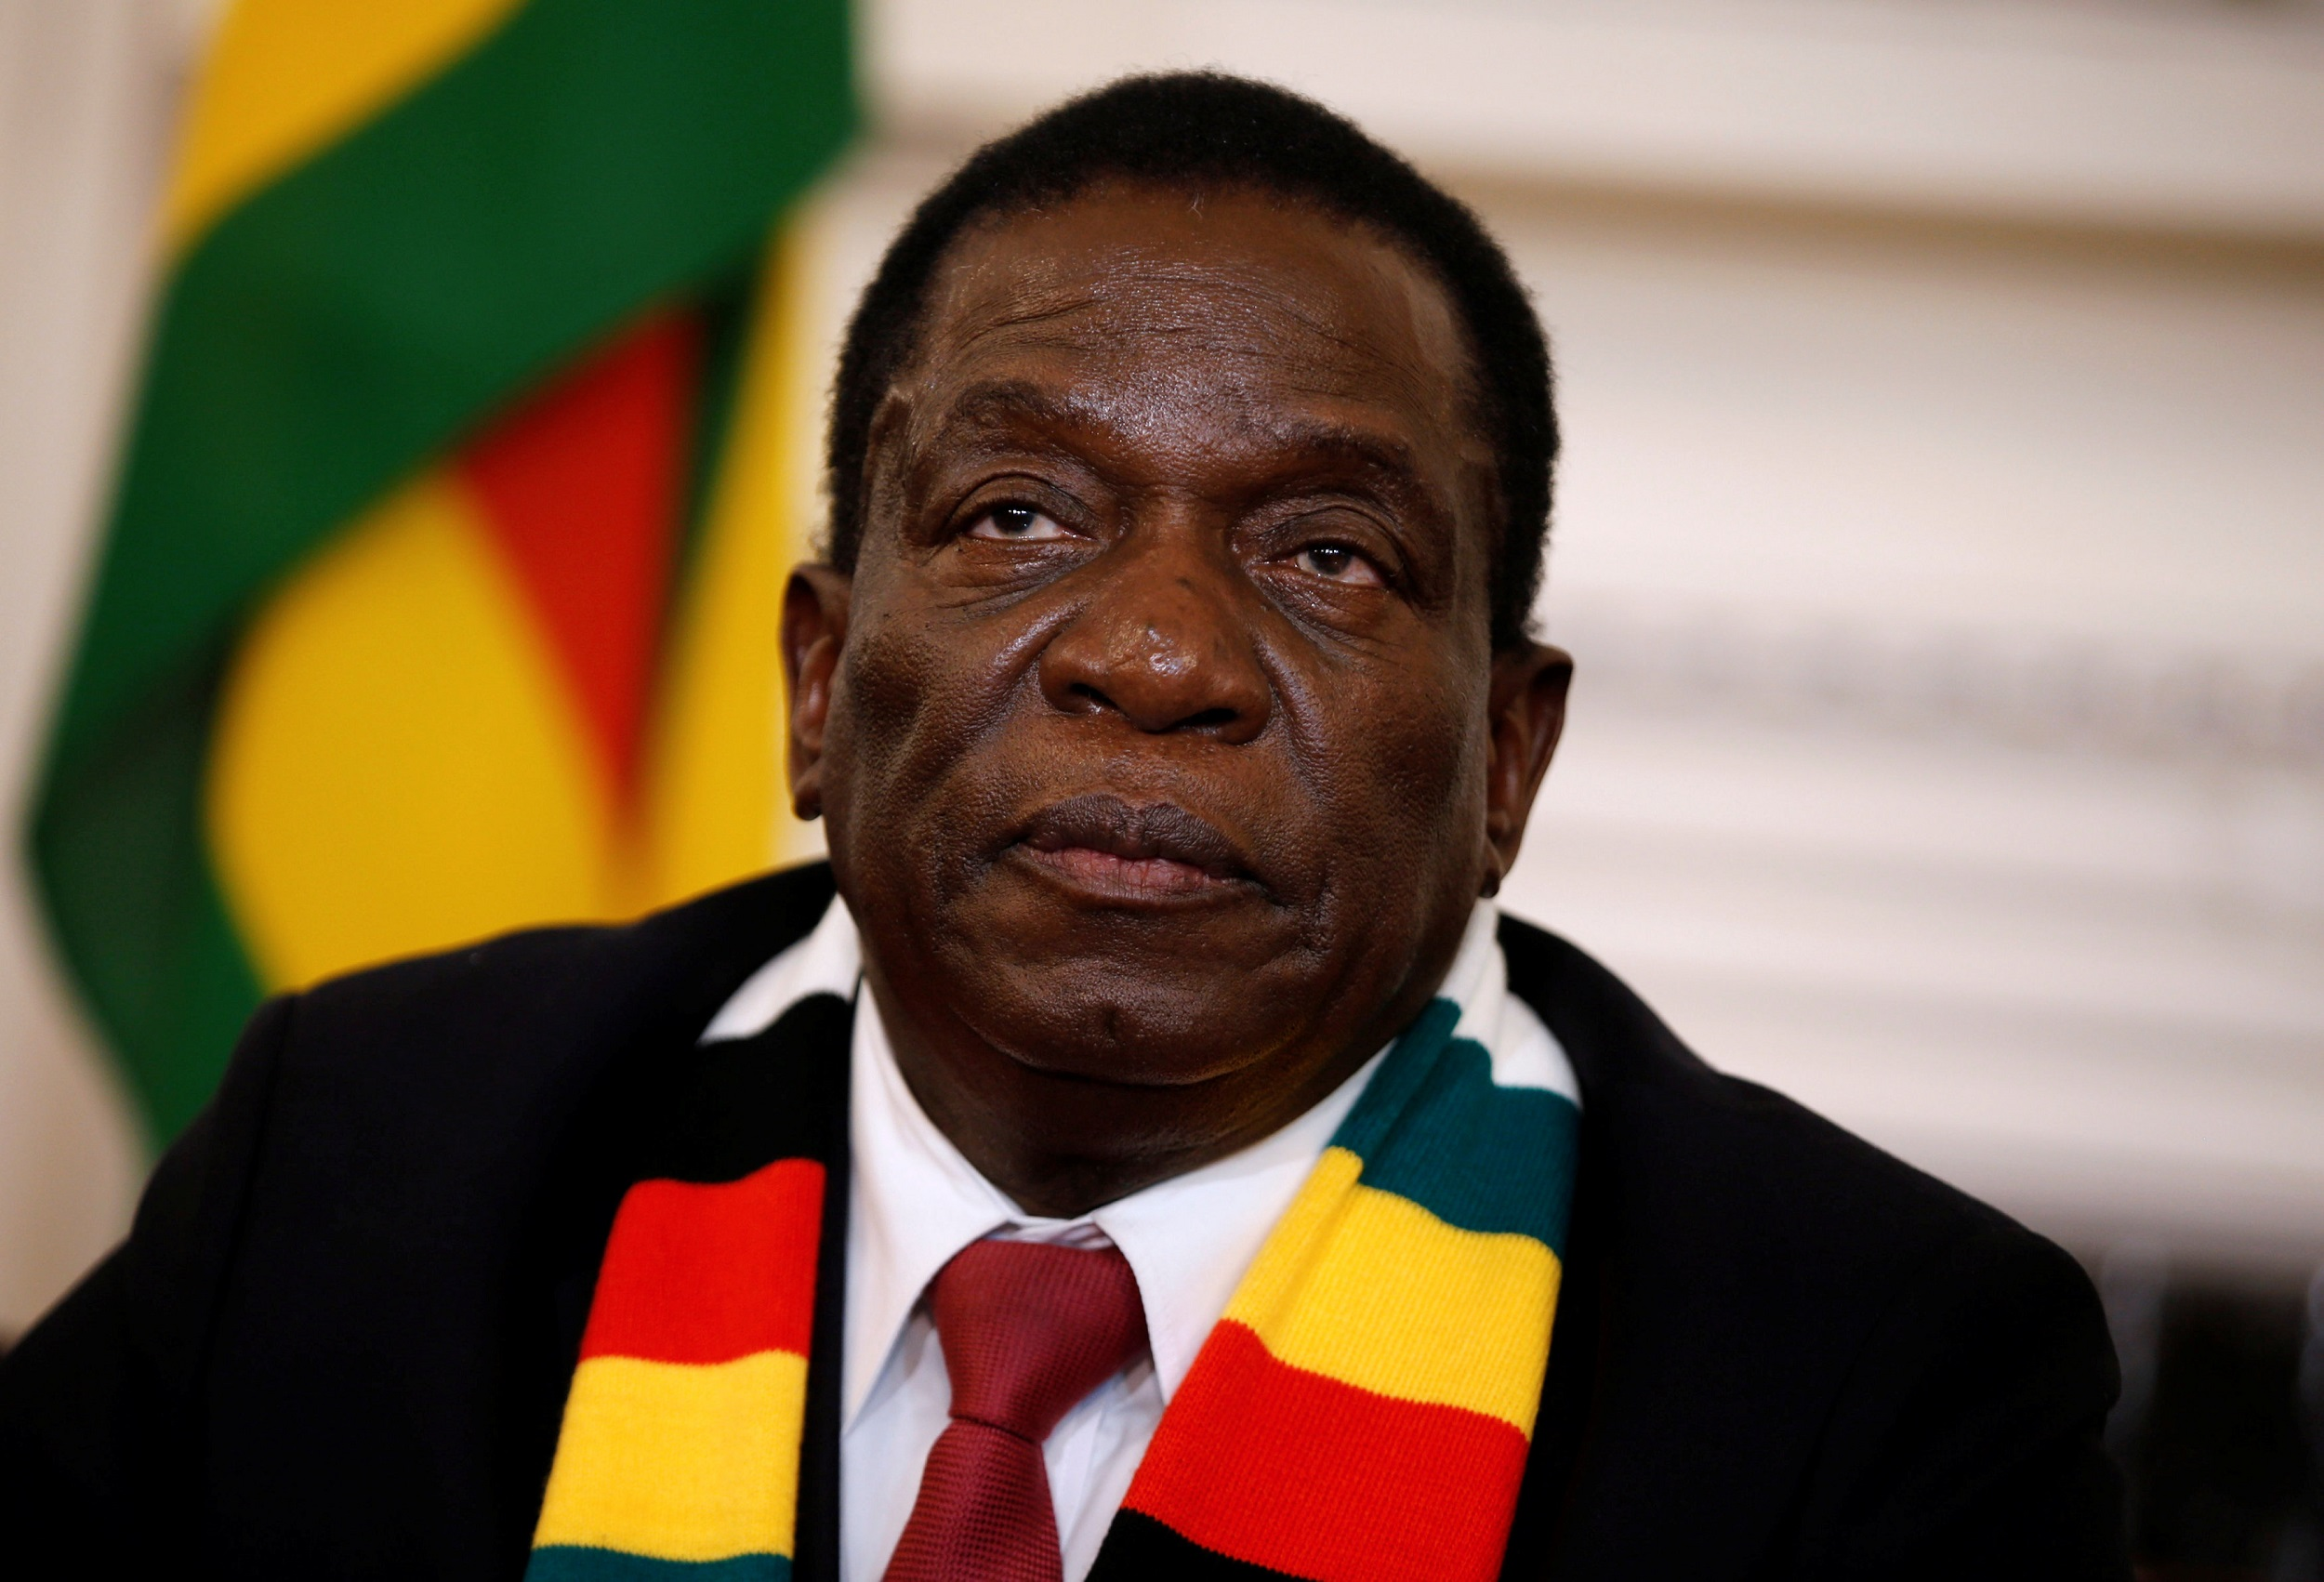 File: Zimbabwe President Emmerson Mnangagwa said the price hikes were unjustified.